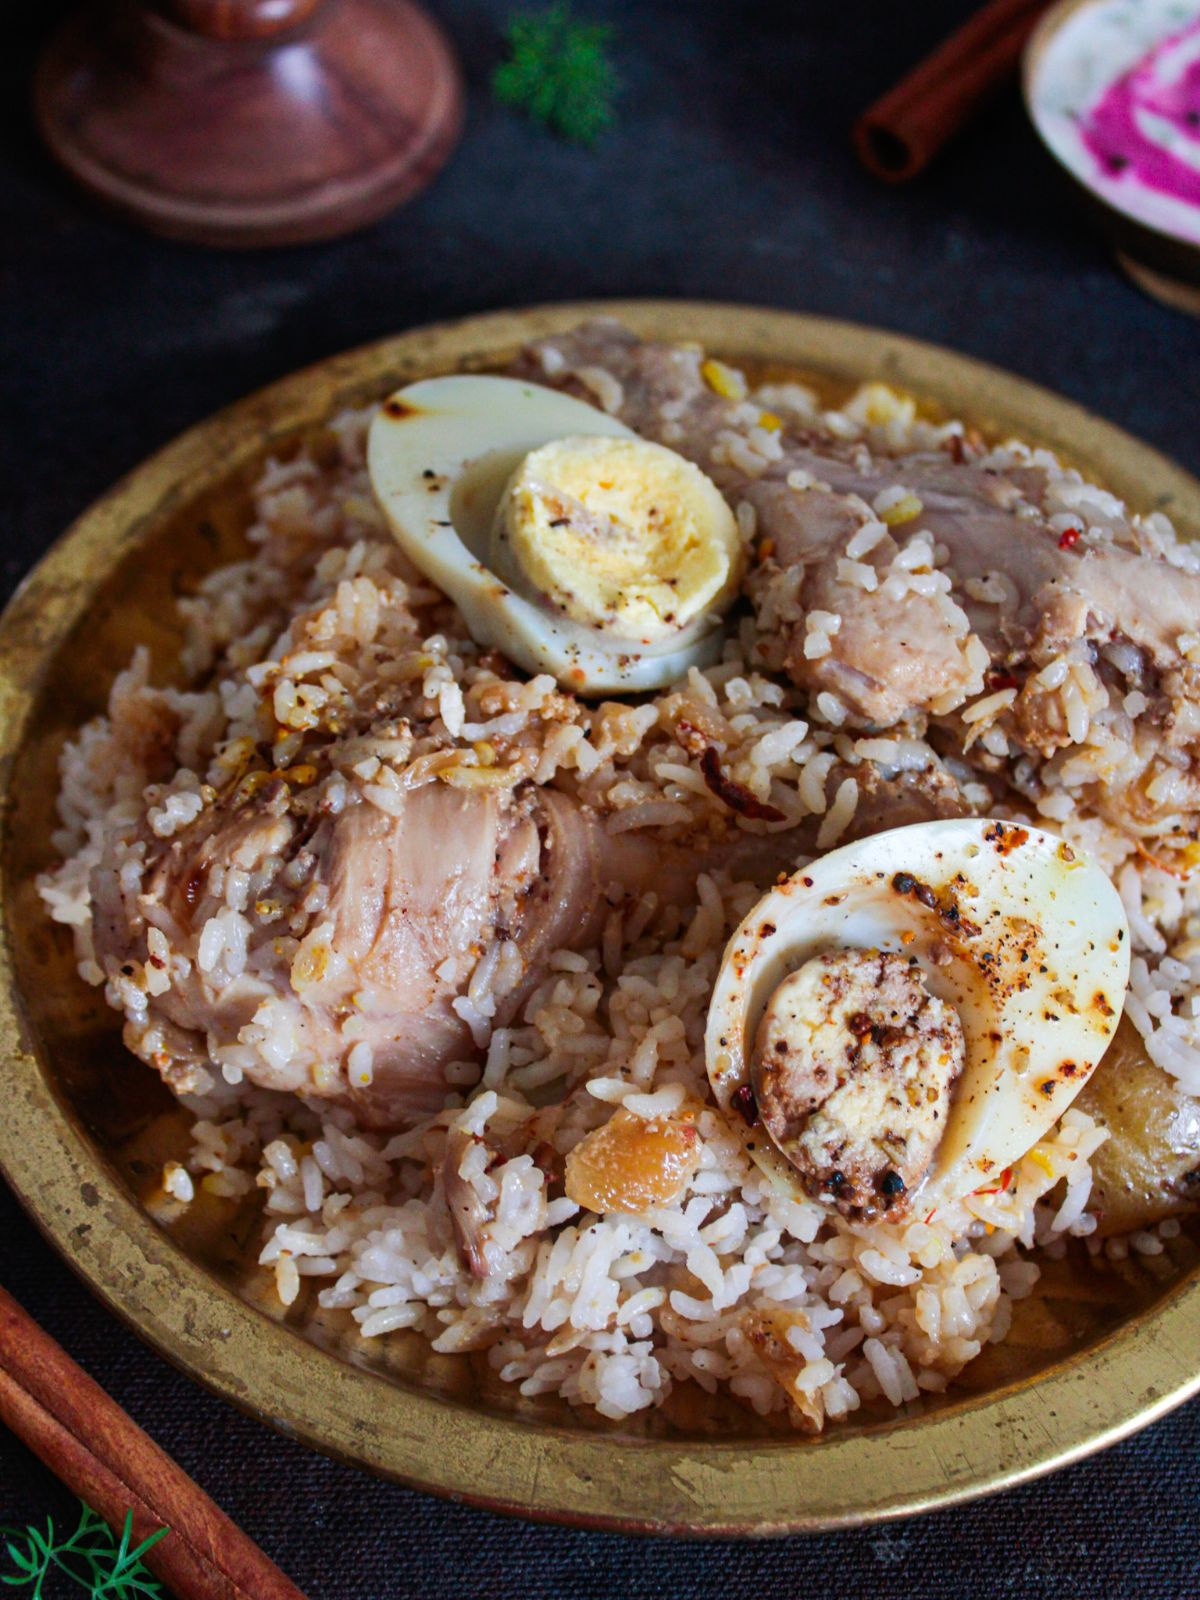 birayni with chicke egg and potato in gold bowl